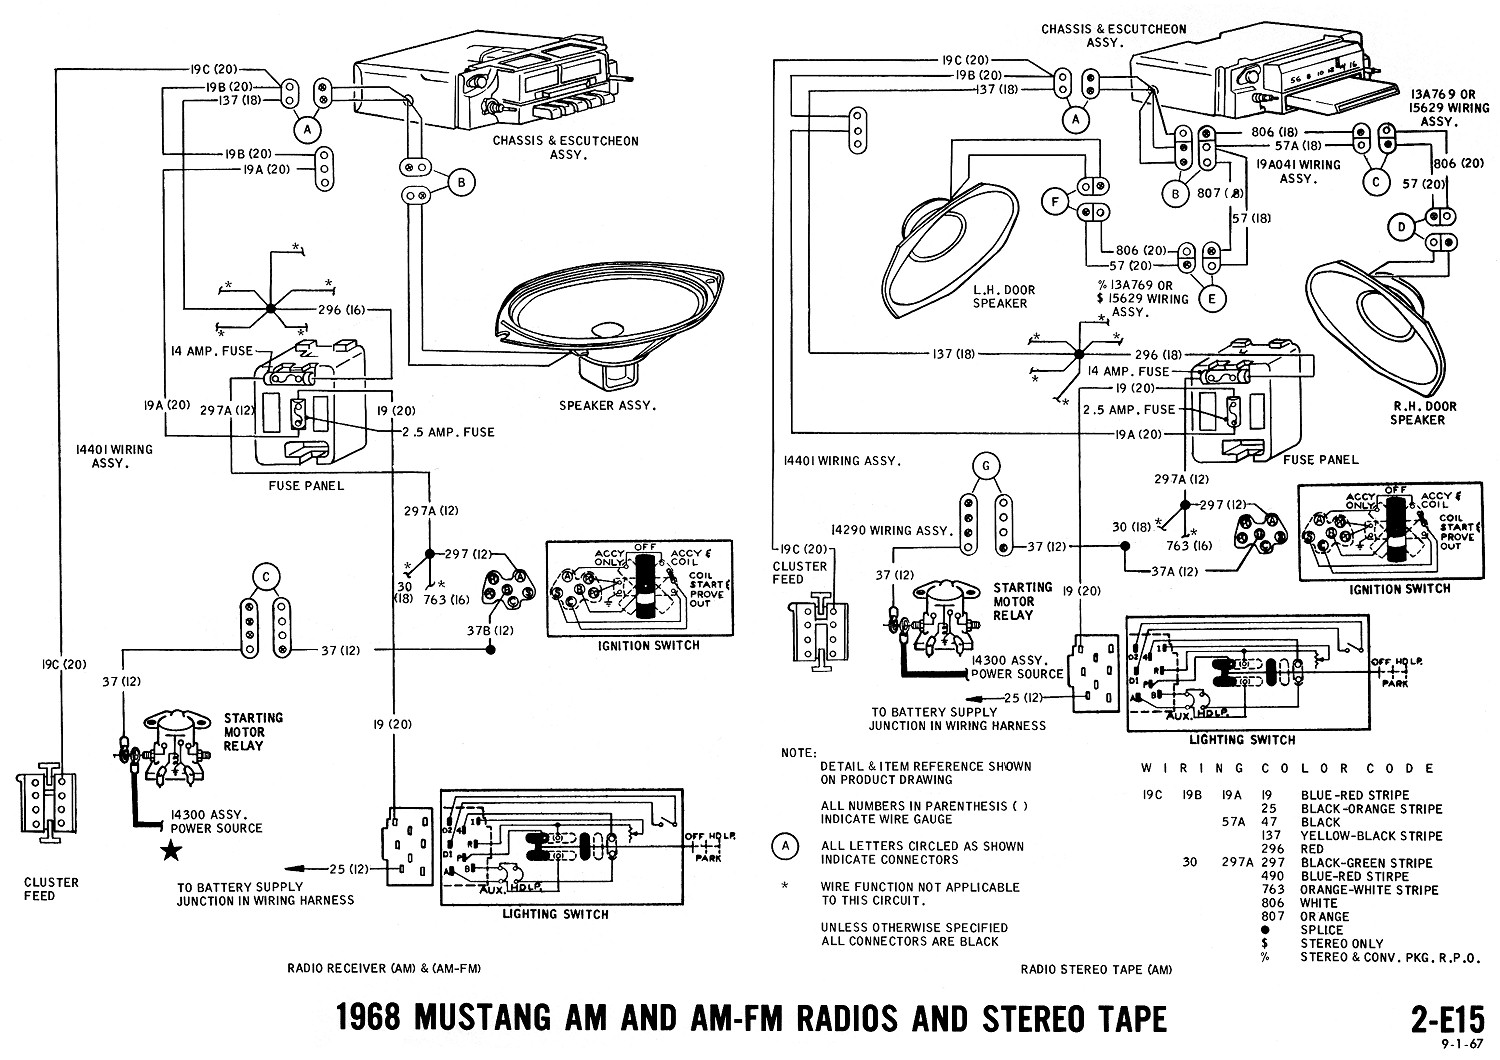 1968 Mustang Wiring Diagrams on 2000 ford radio wiring diagram